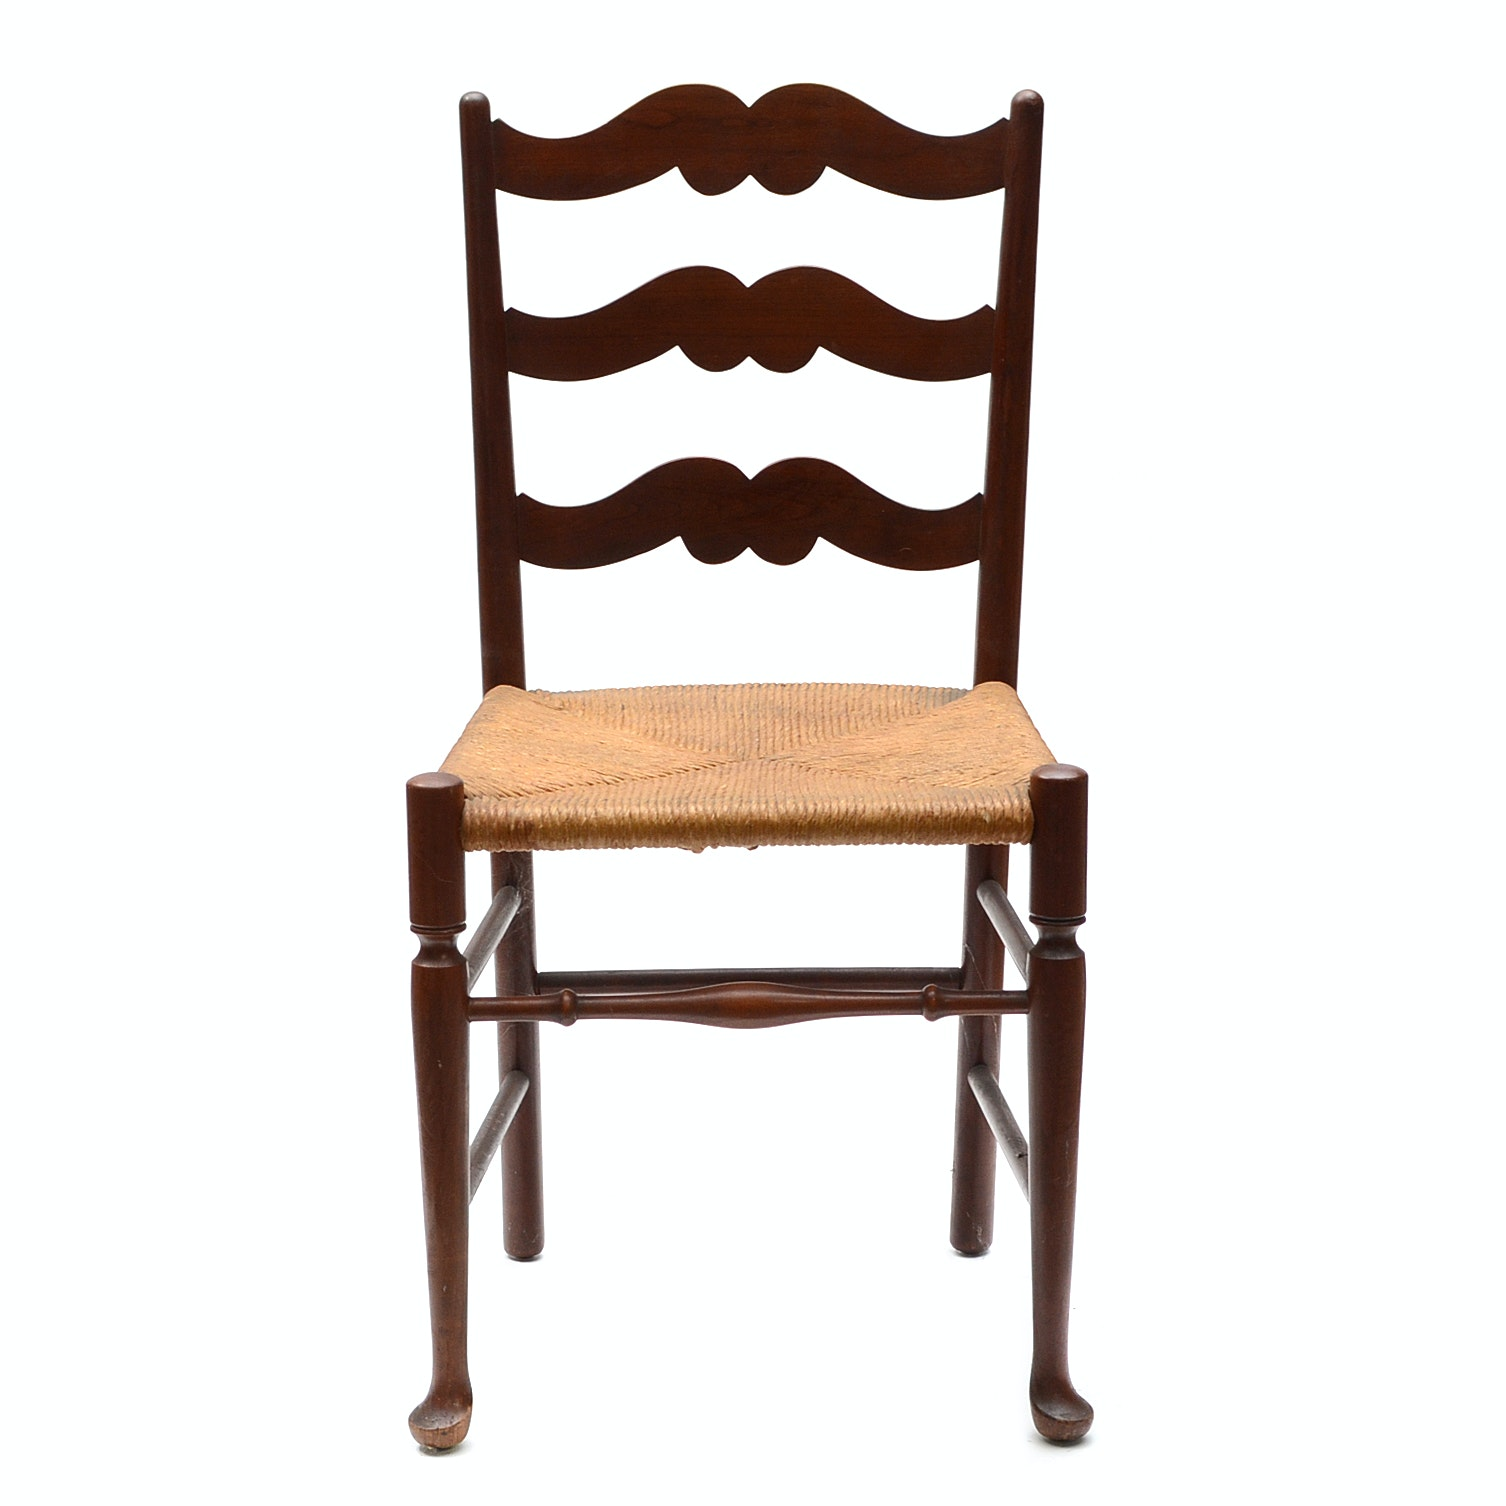 Walnut Ladder Back Side Chair with Woven Wicker Seat